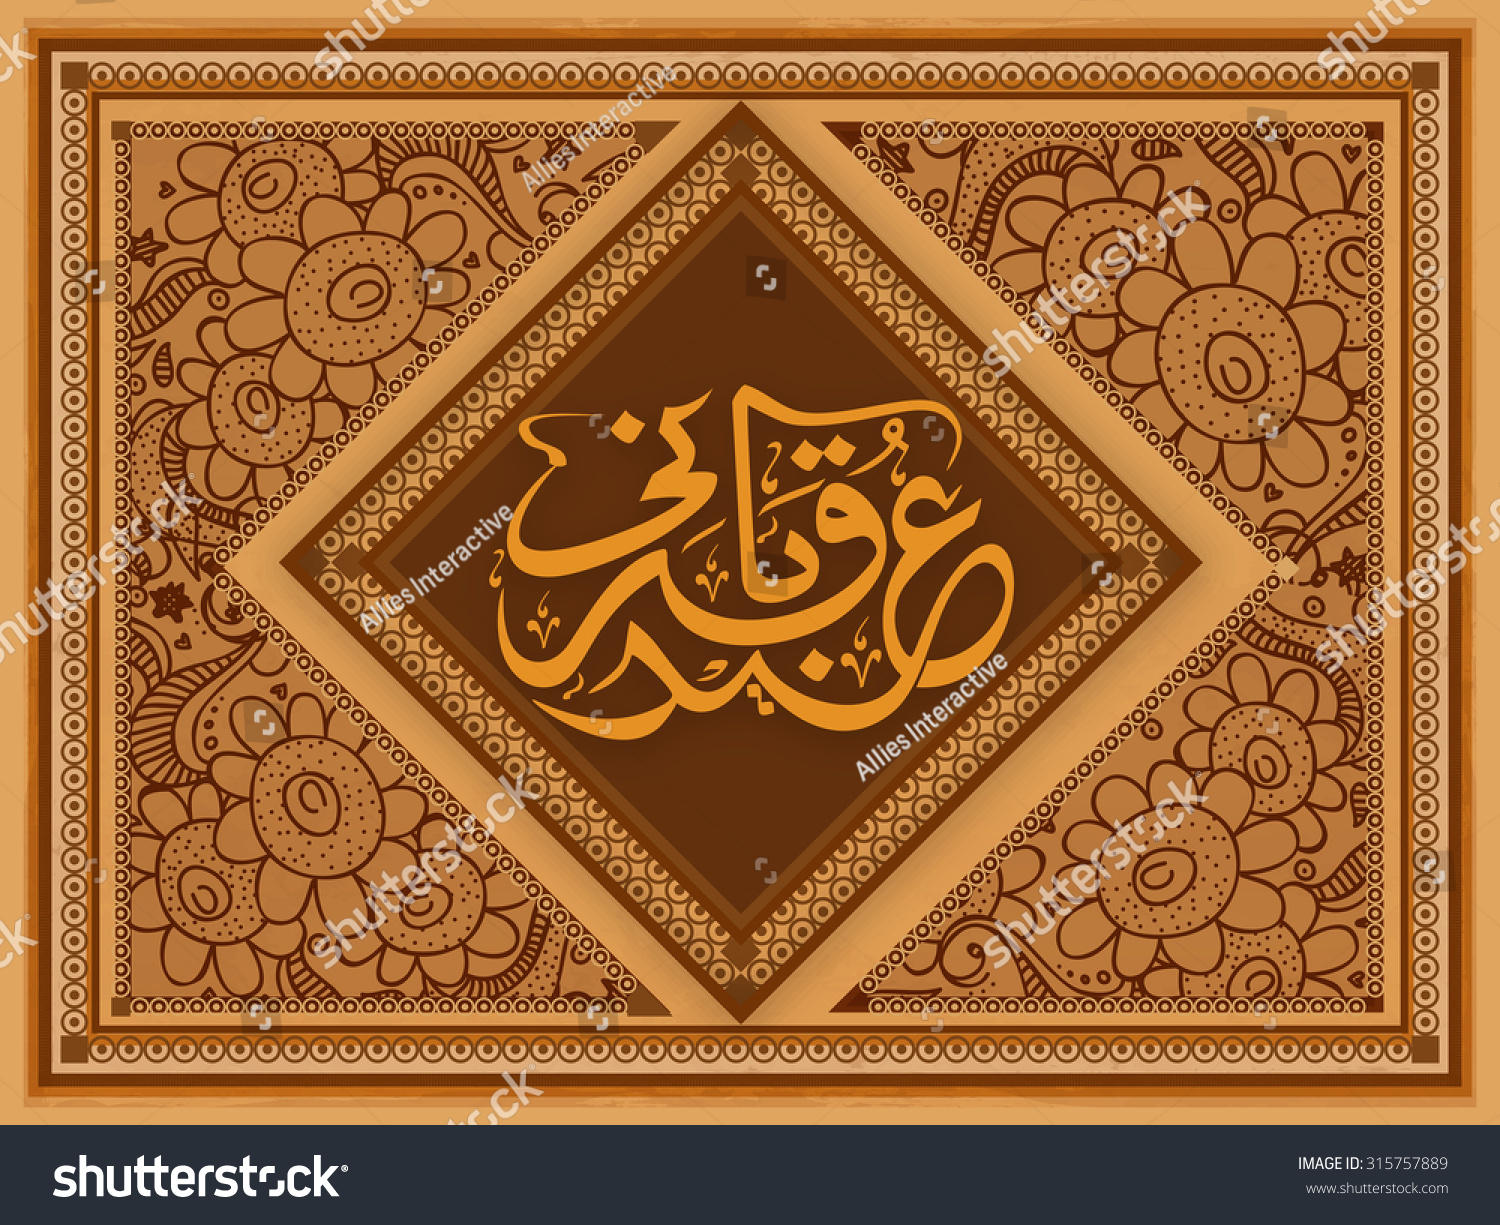 Islamic writing in a beautiful golden frame stock photo picture